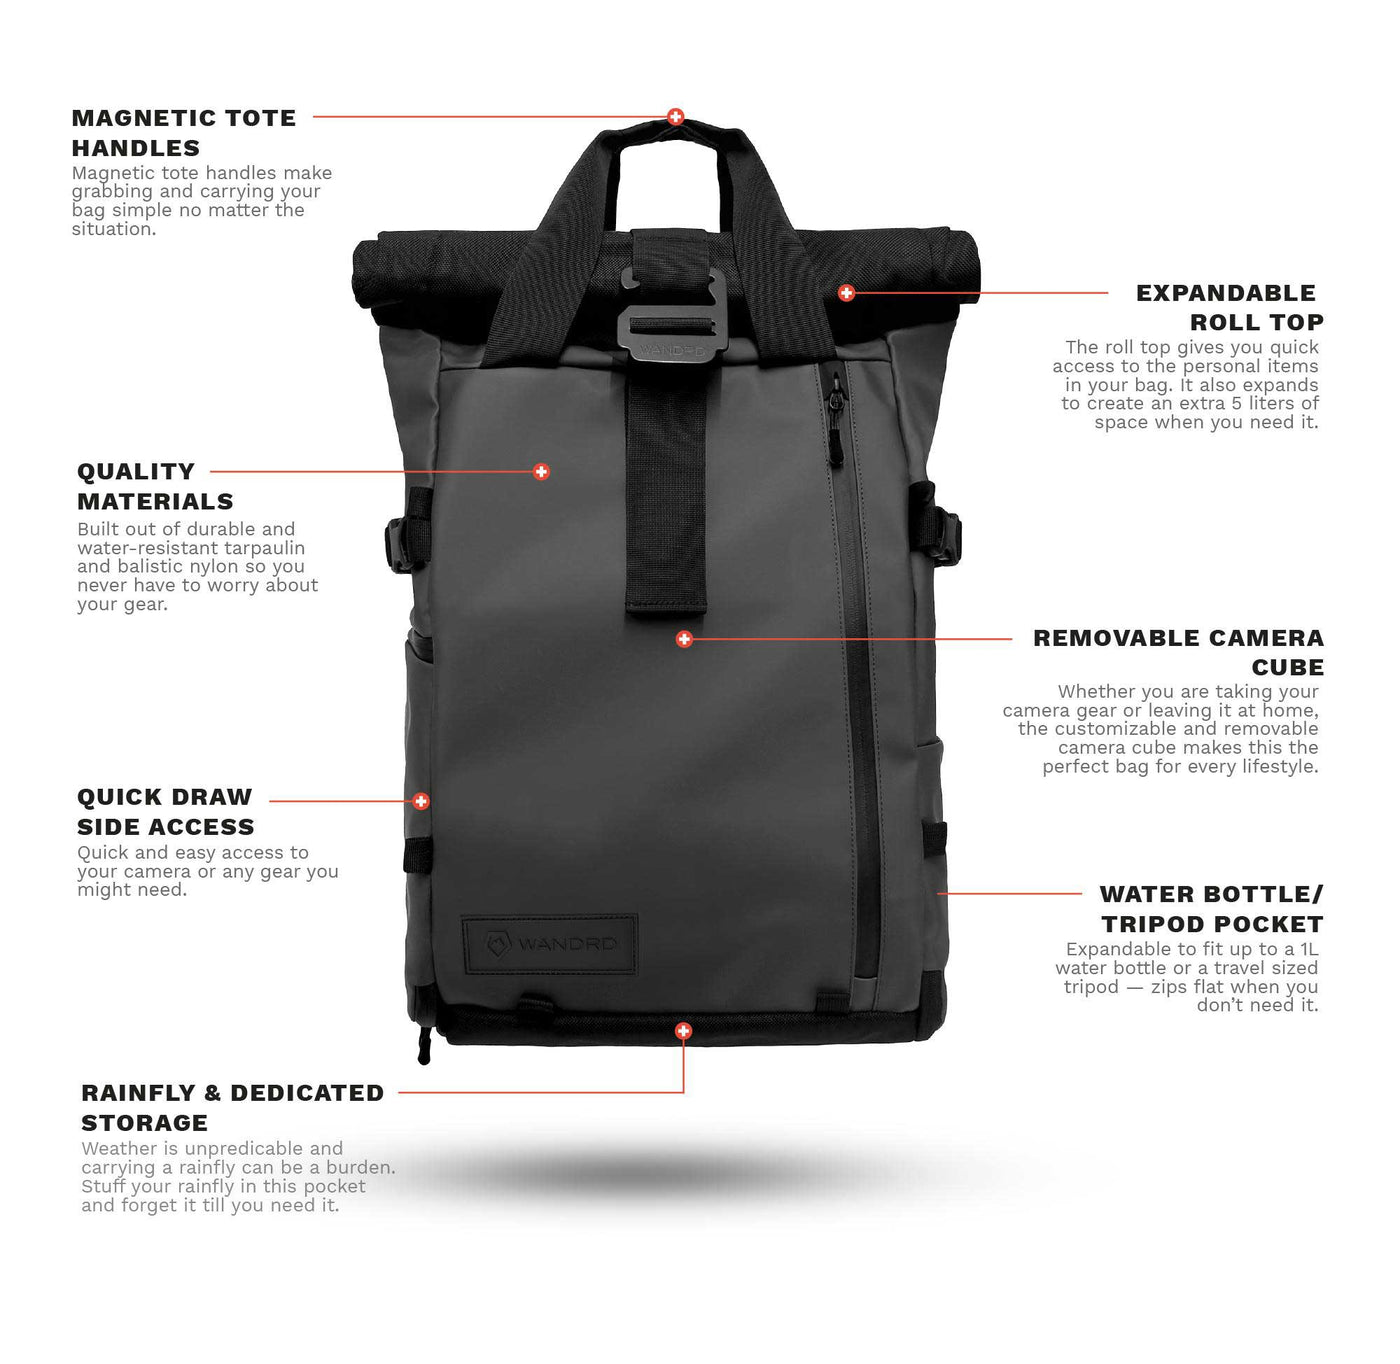 05d2da2ff0 PRVKE: The Award-Winning Travel Camera Backpack & Bag | WANDRD